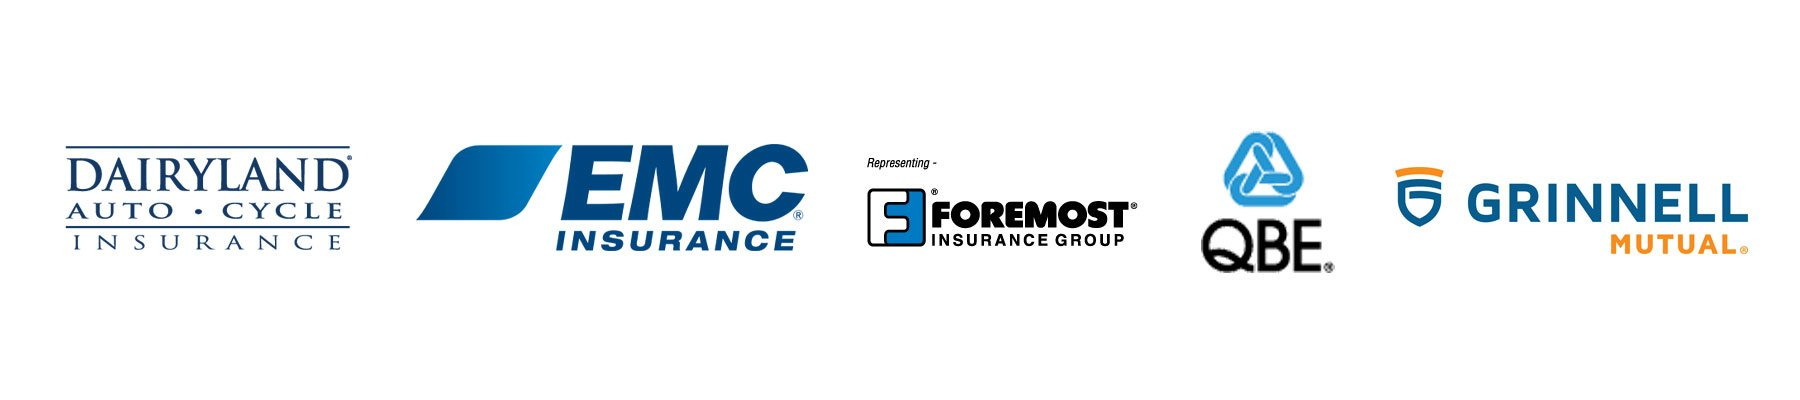 Diaryland Insurance Logo, EMC Insurance Logo, Foremost Insurance Group Logo, QBE Logo, Grinnell Mutual Logo, Insurance Services